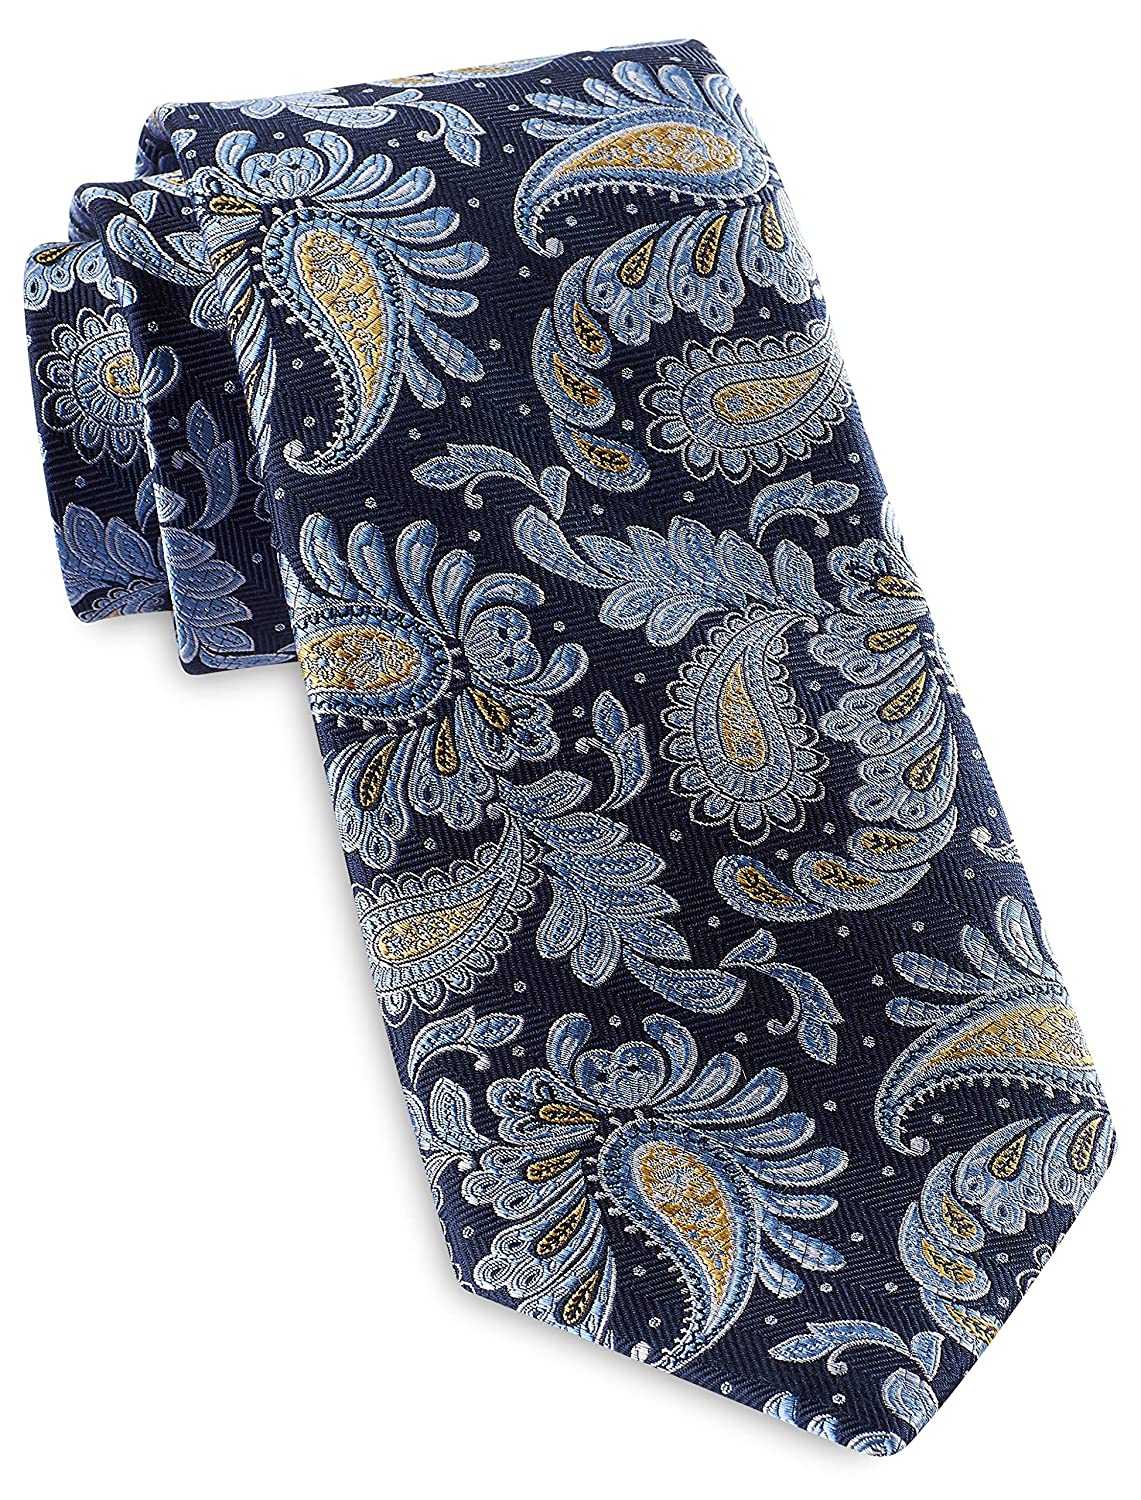 Rochester by DXL Big and Tall Designed in Italy Textured Leaf Paisley Silk Tie